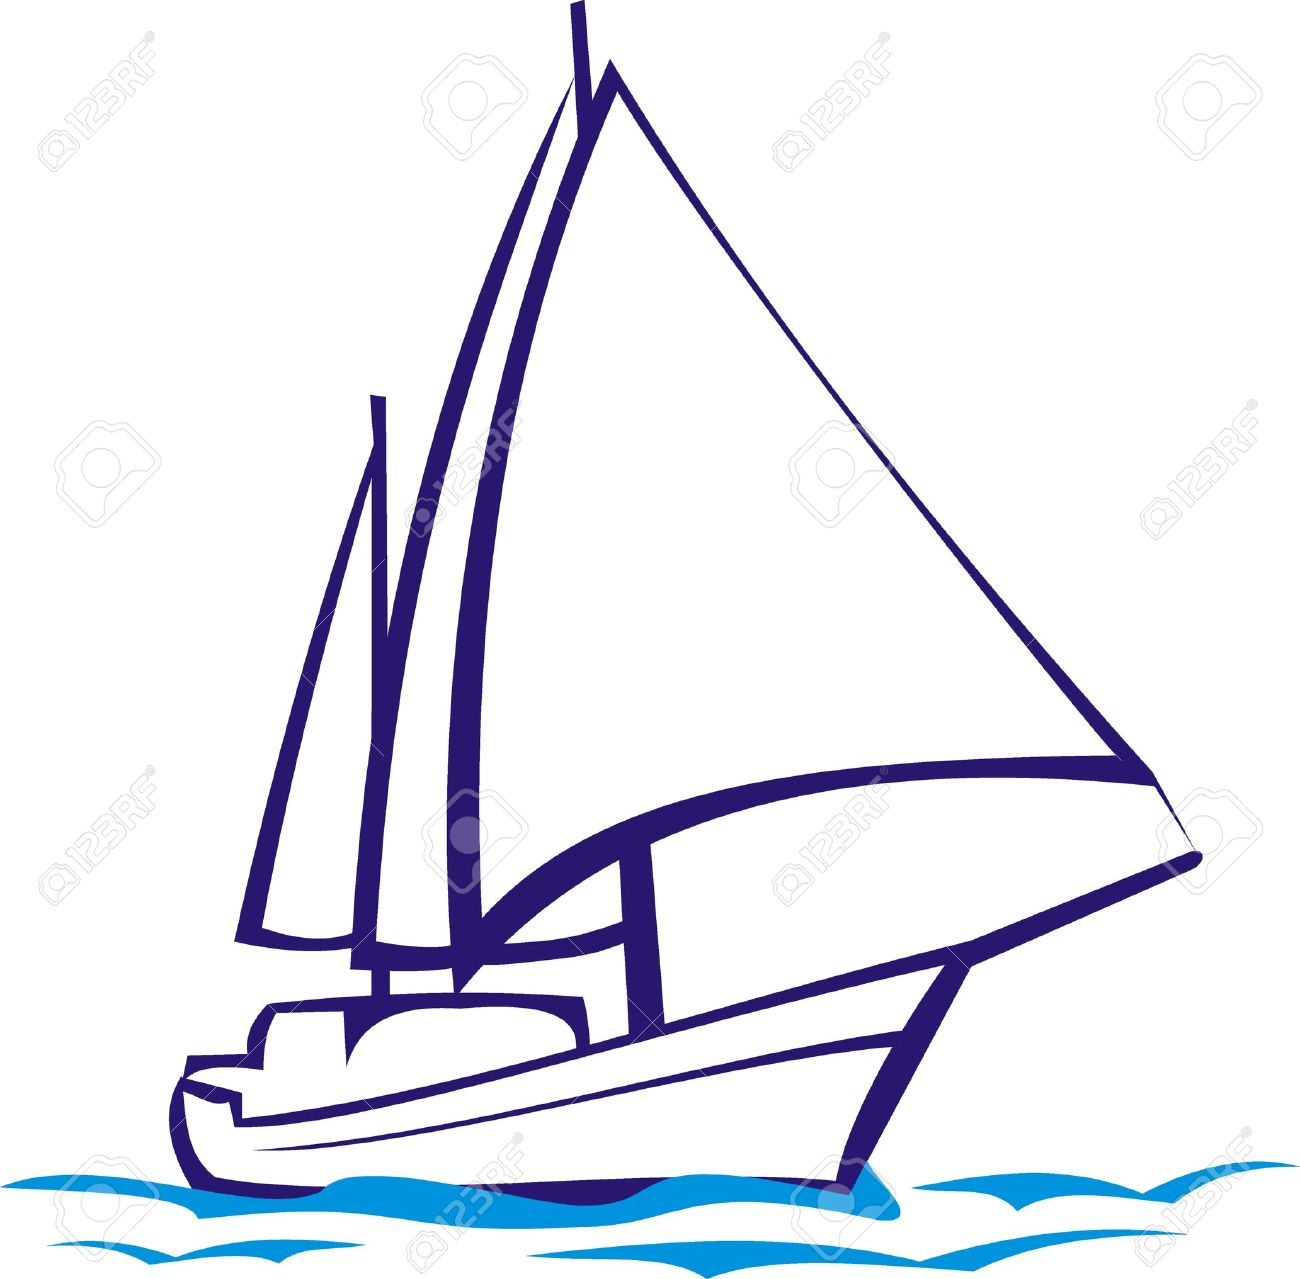 Line Drawing Yacht : Yacht racing clipart clipground